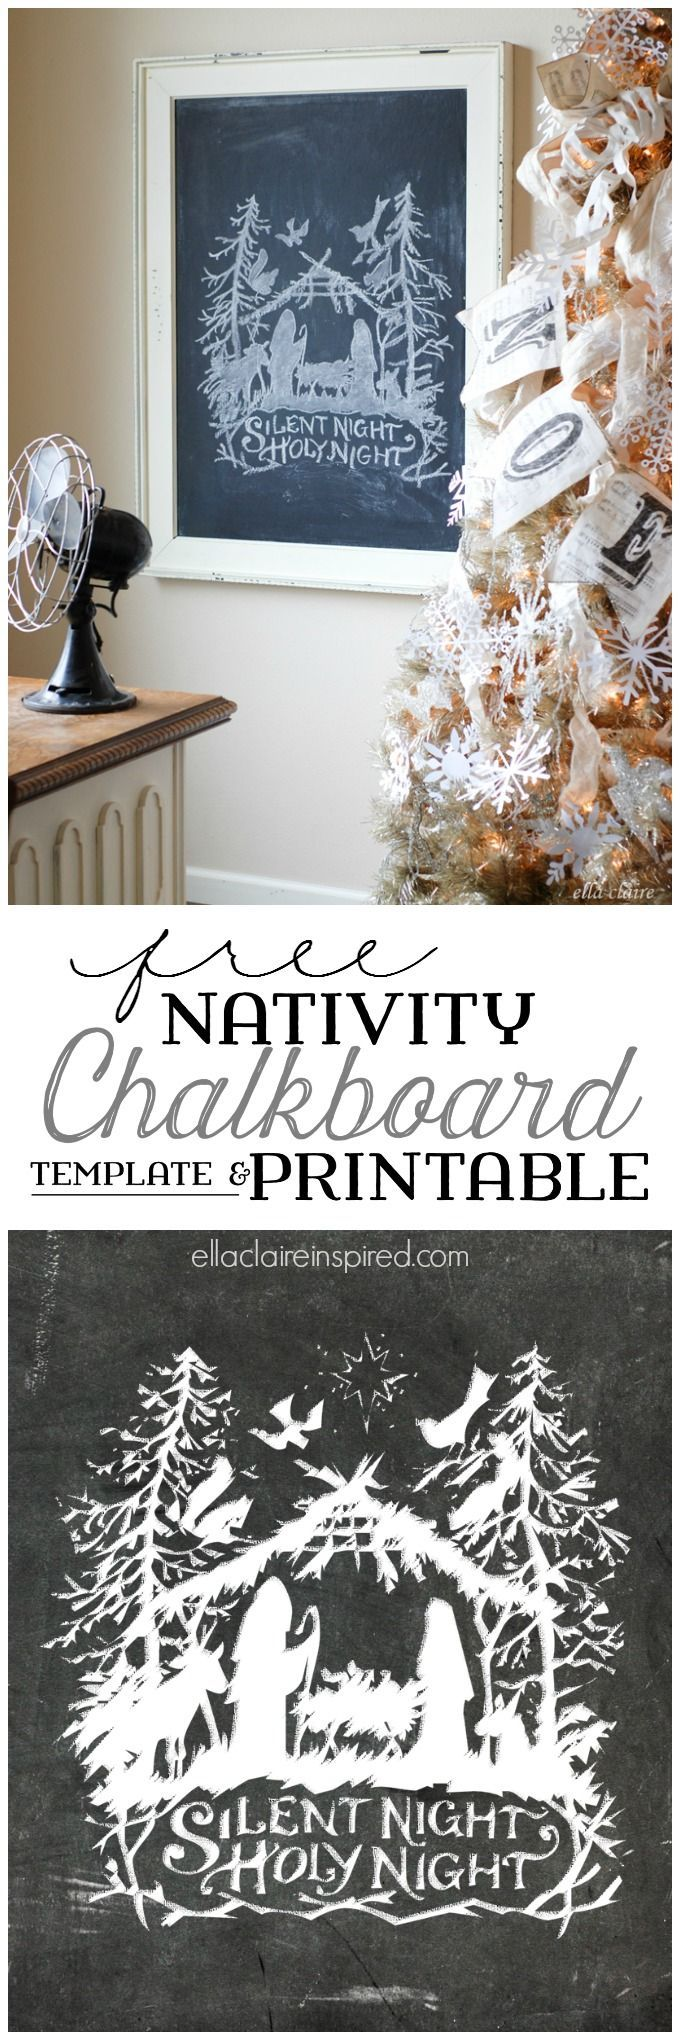 Print the Chalkboard printable as-is or use the free template and tutorial to create your own Nativity Chalkboard Art! by Ella Claire